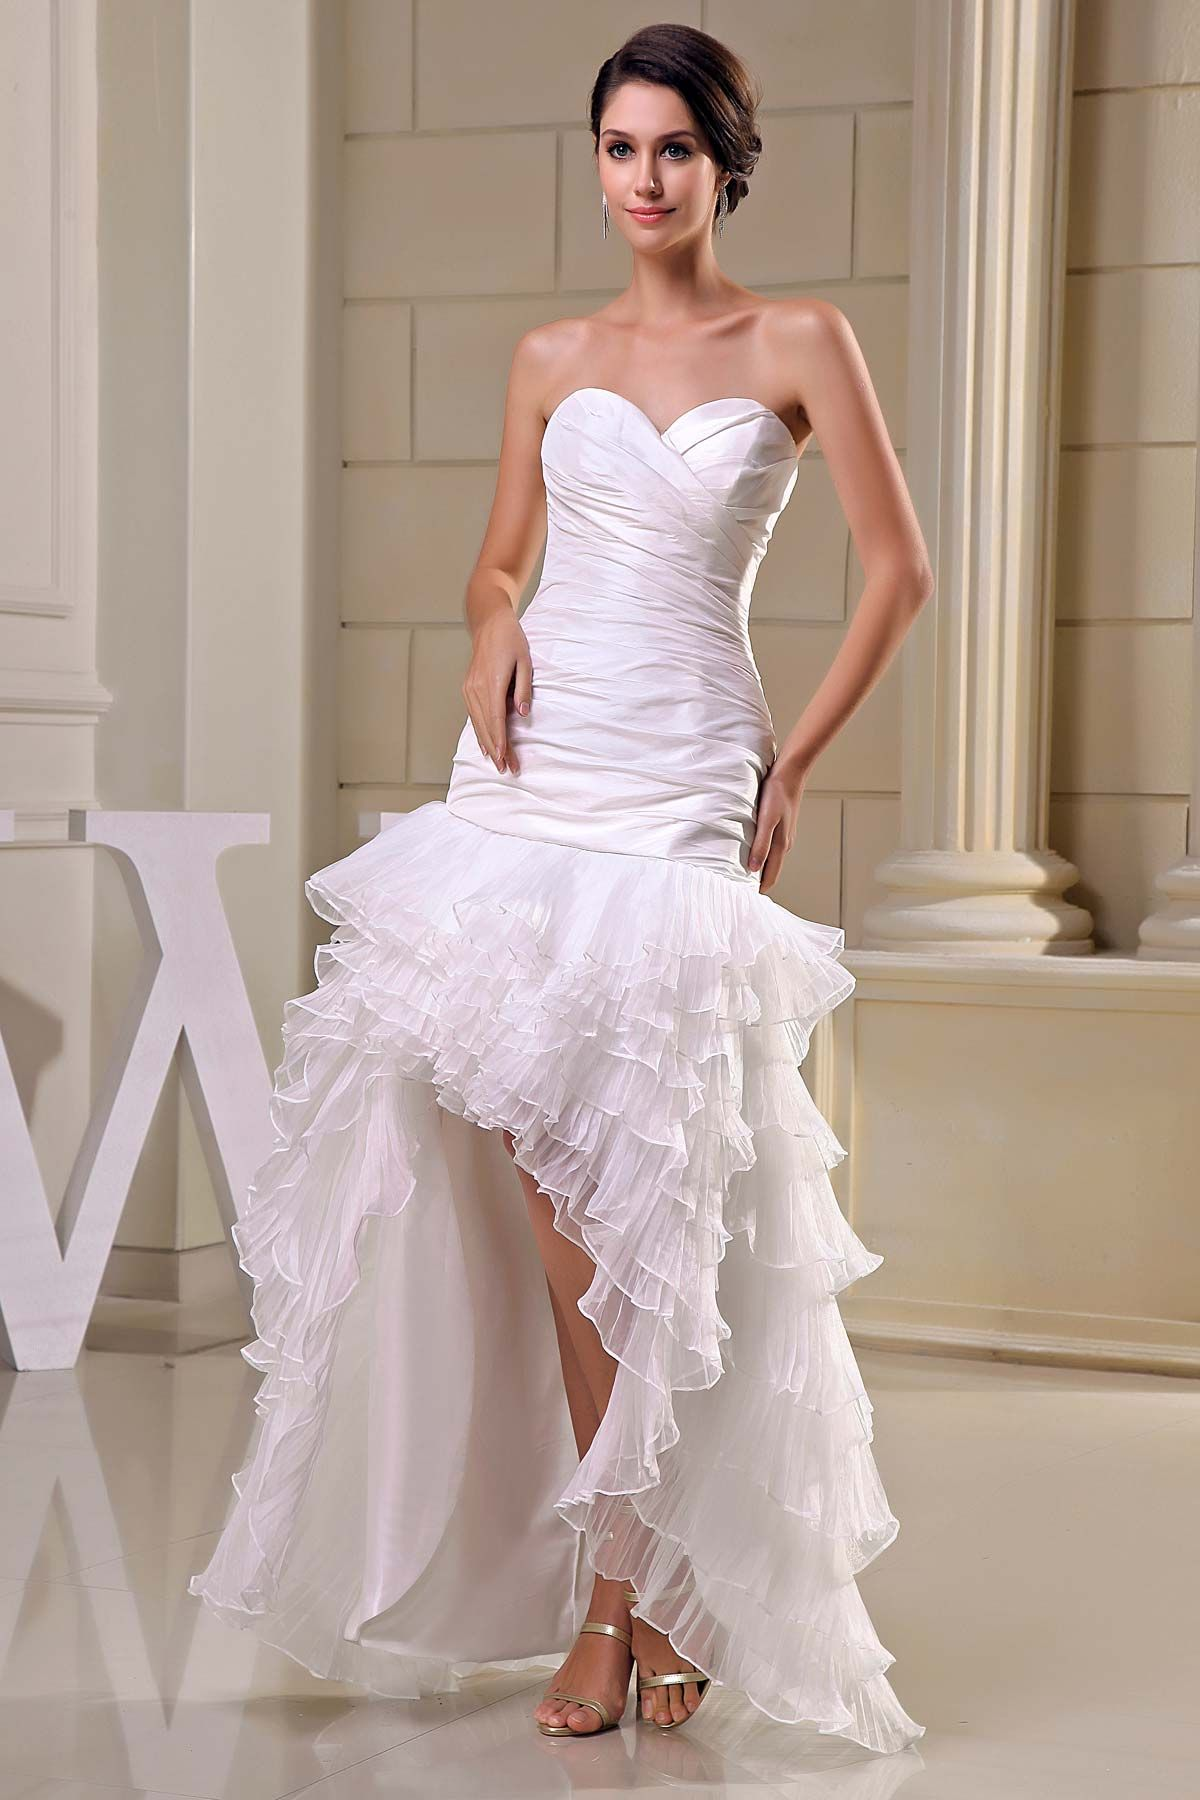 Mermaid ruffle wedding dress  Mermaid White Tulle Asymmetrical Sweetheart Wedding Dress  Wedding